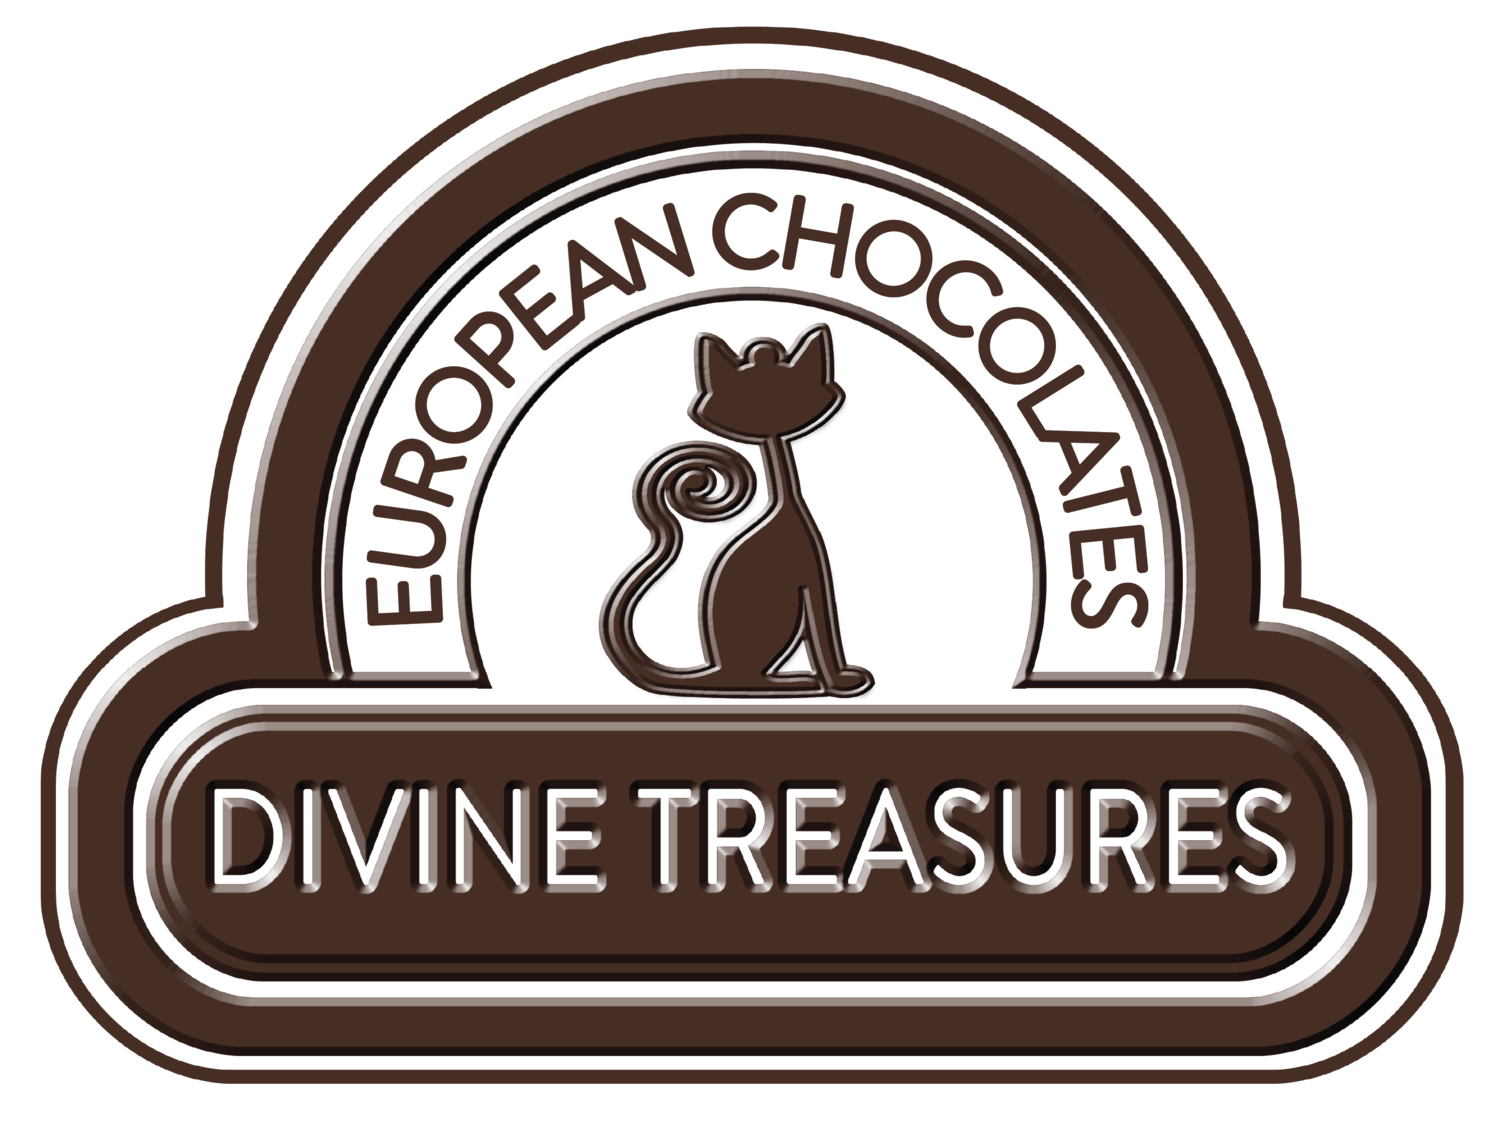 Divine Treasures Chocolates